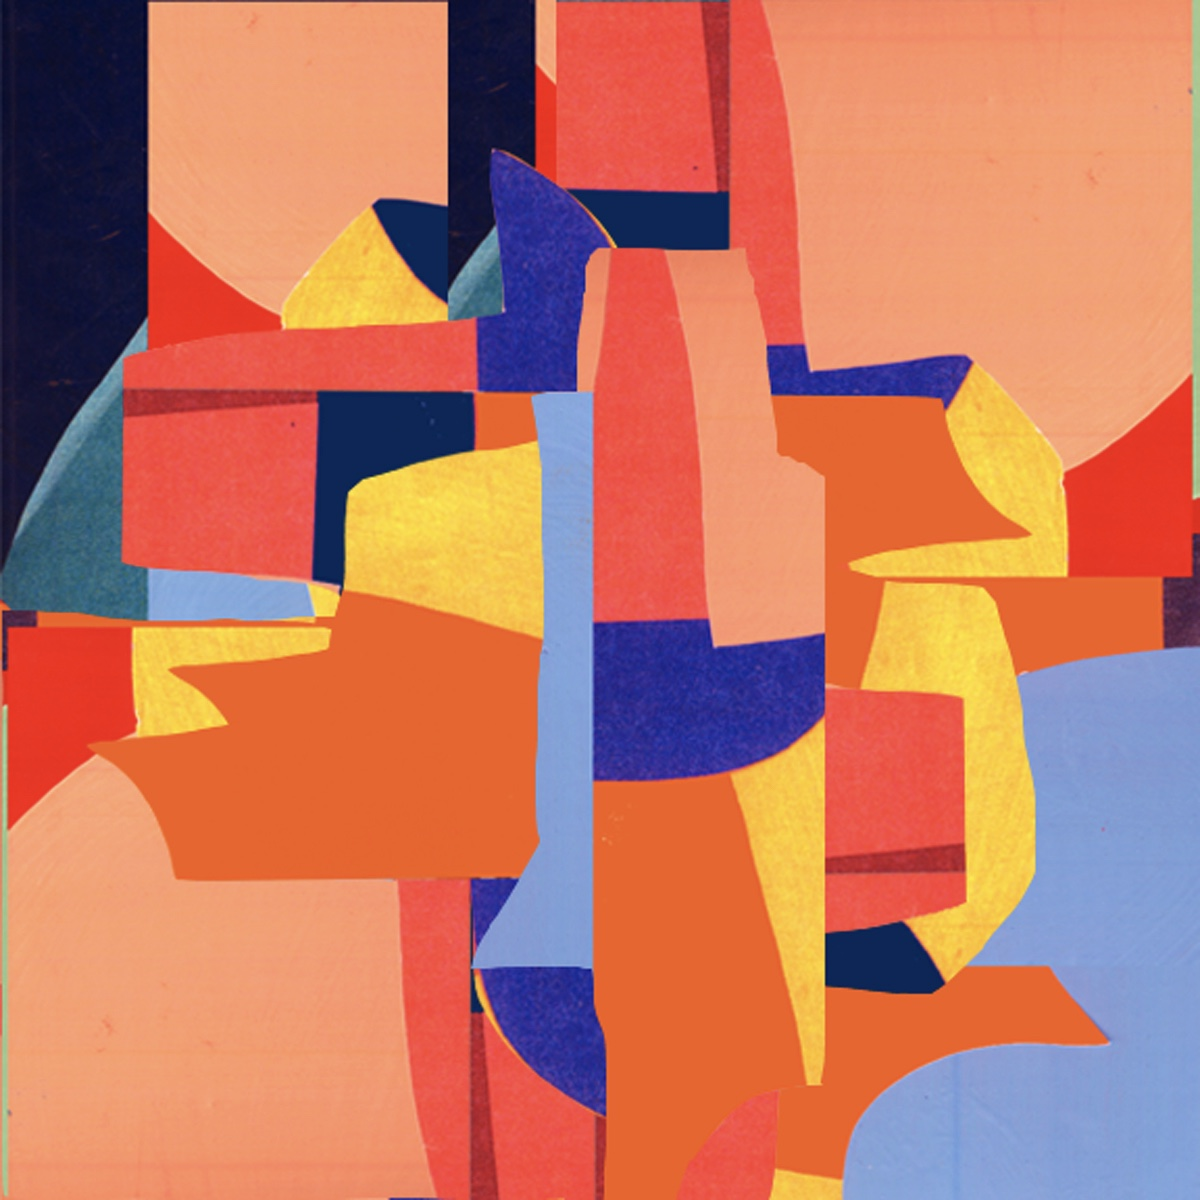 Abstract collage work by Ryan Seslow